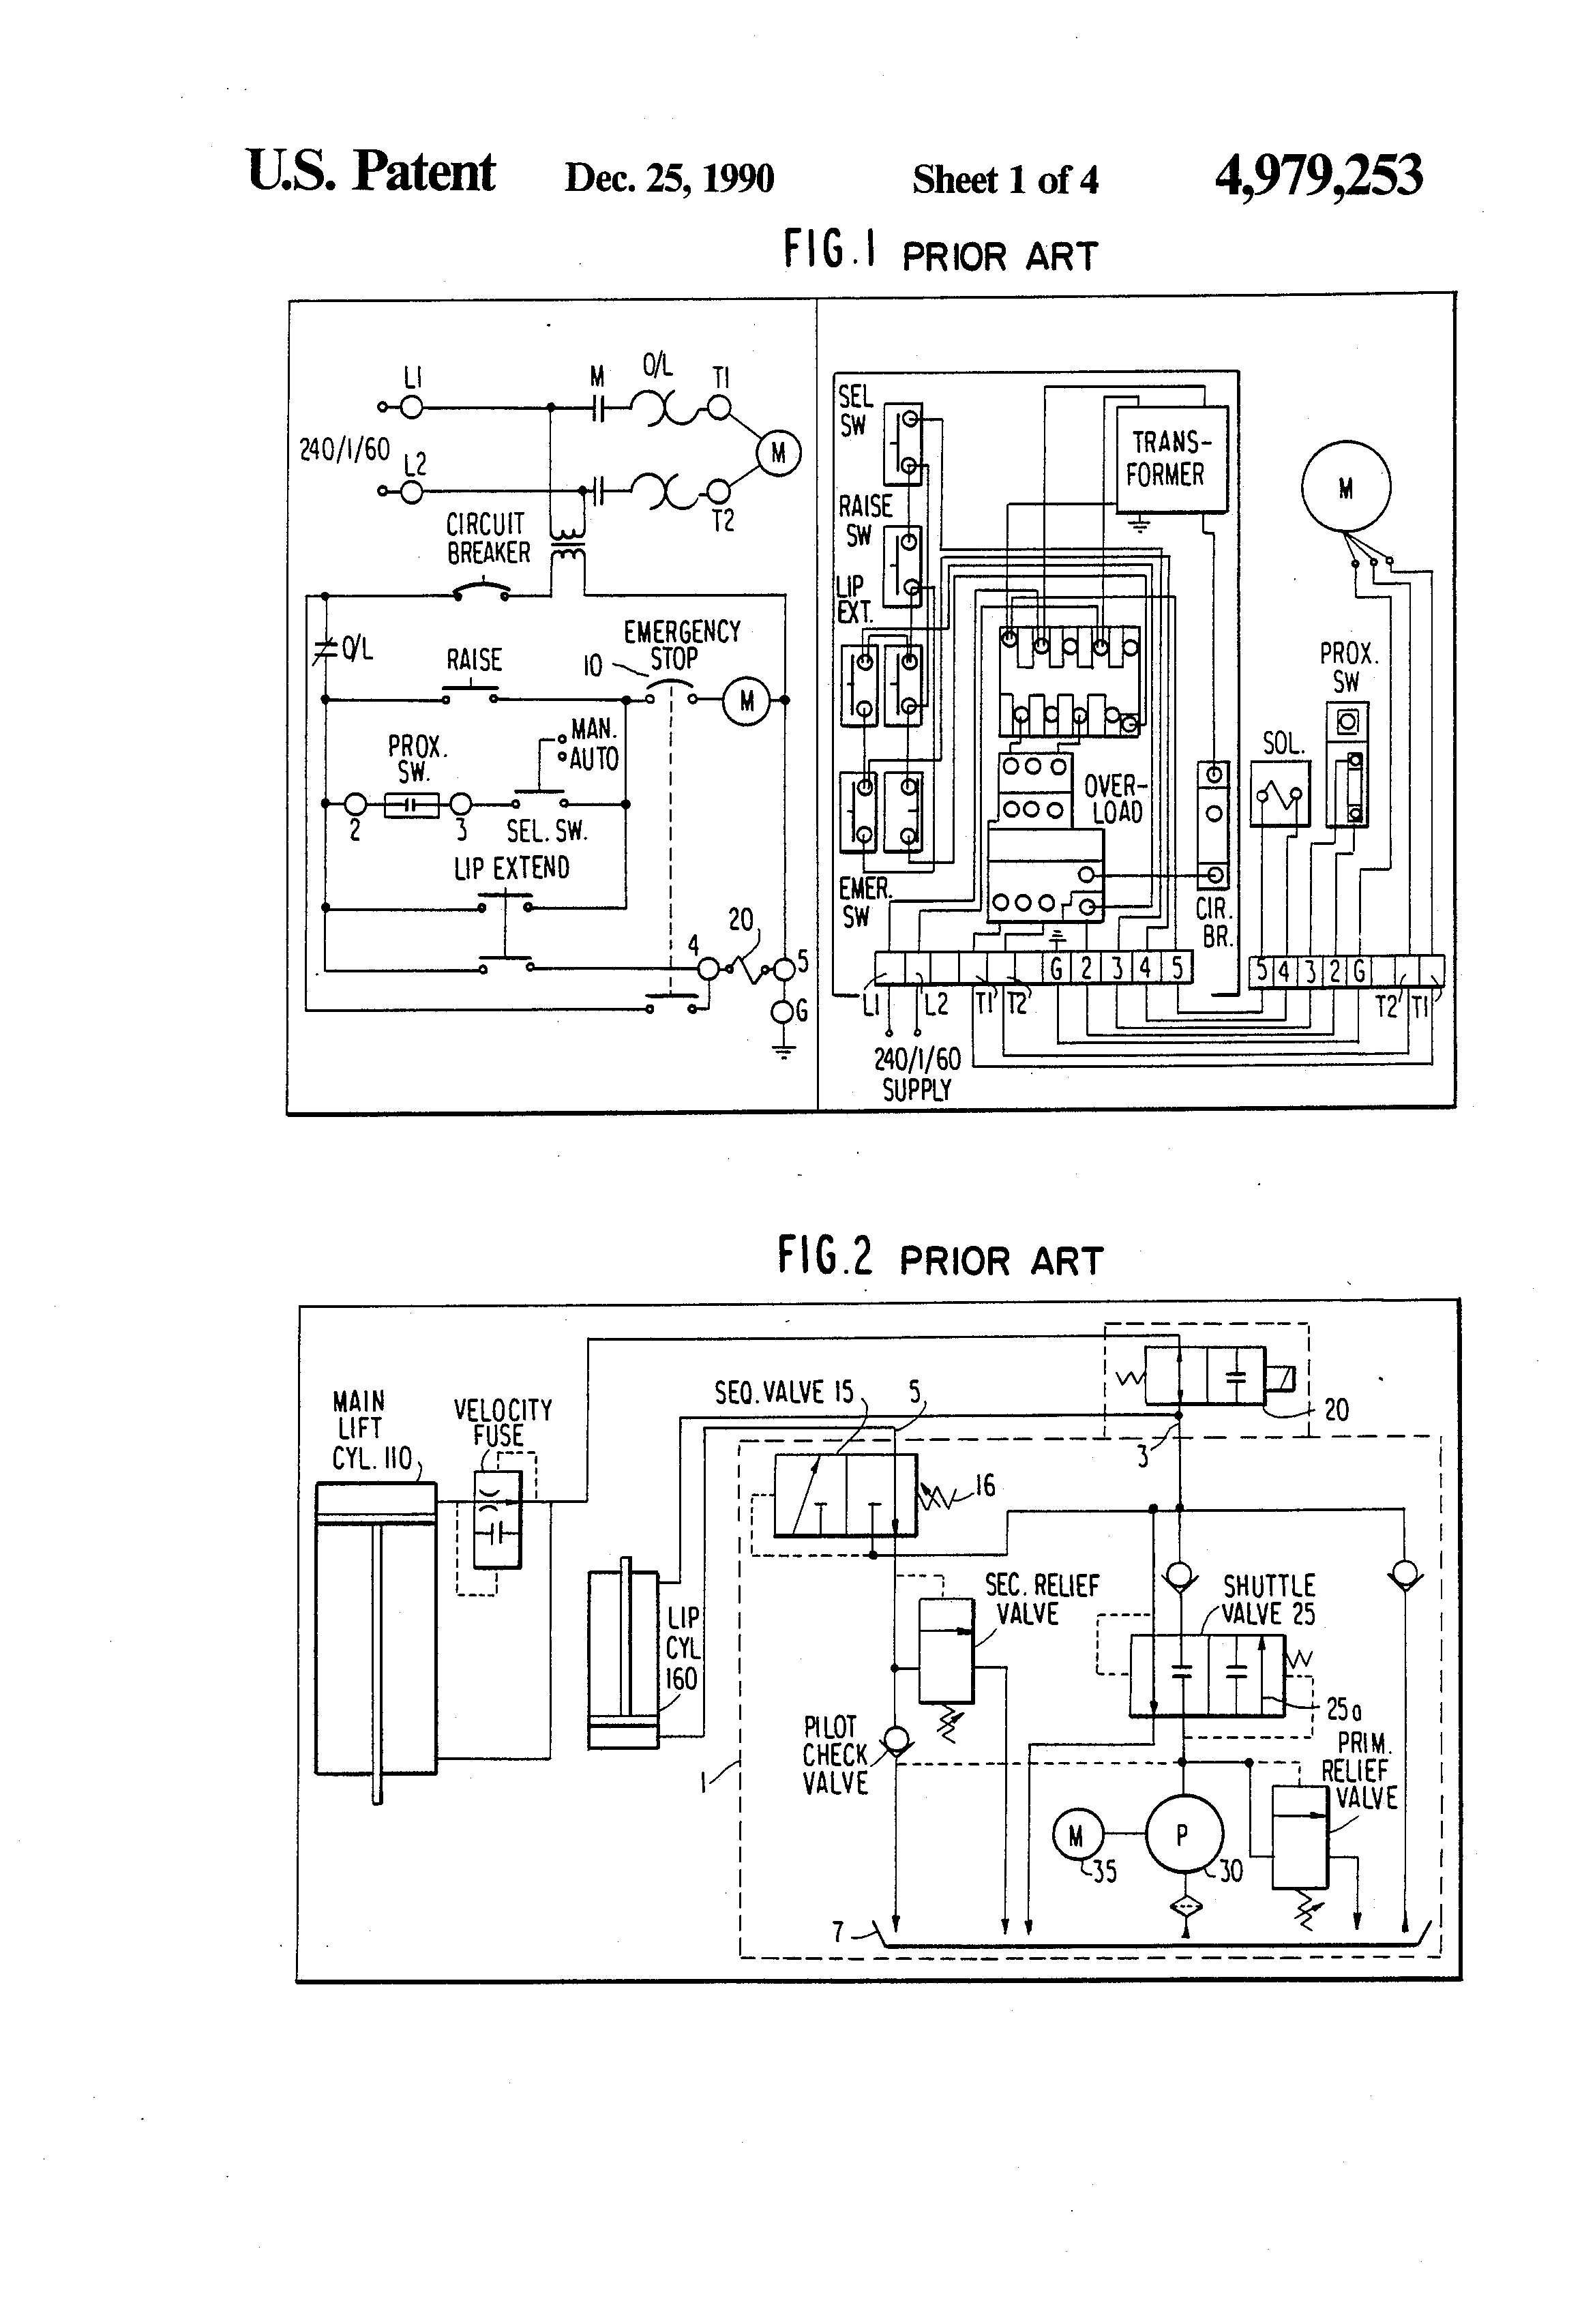 Wiring An Schematic Diagram Auto Electrical Dryer Motor 115v X603 Loading Dock Leveler Boat Levelers